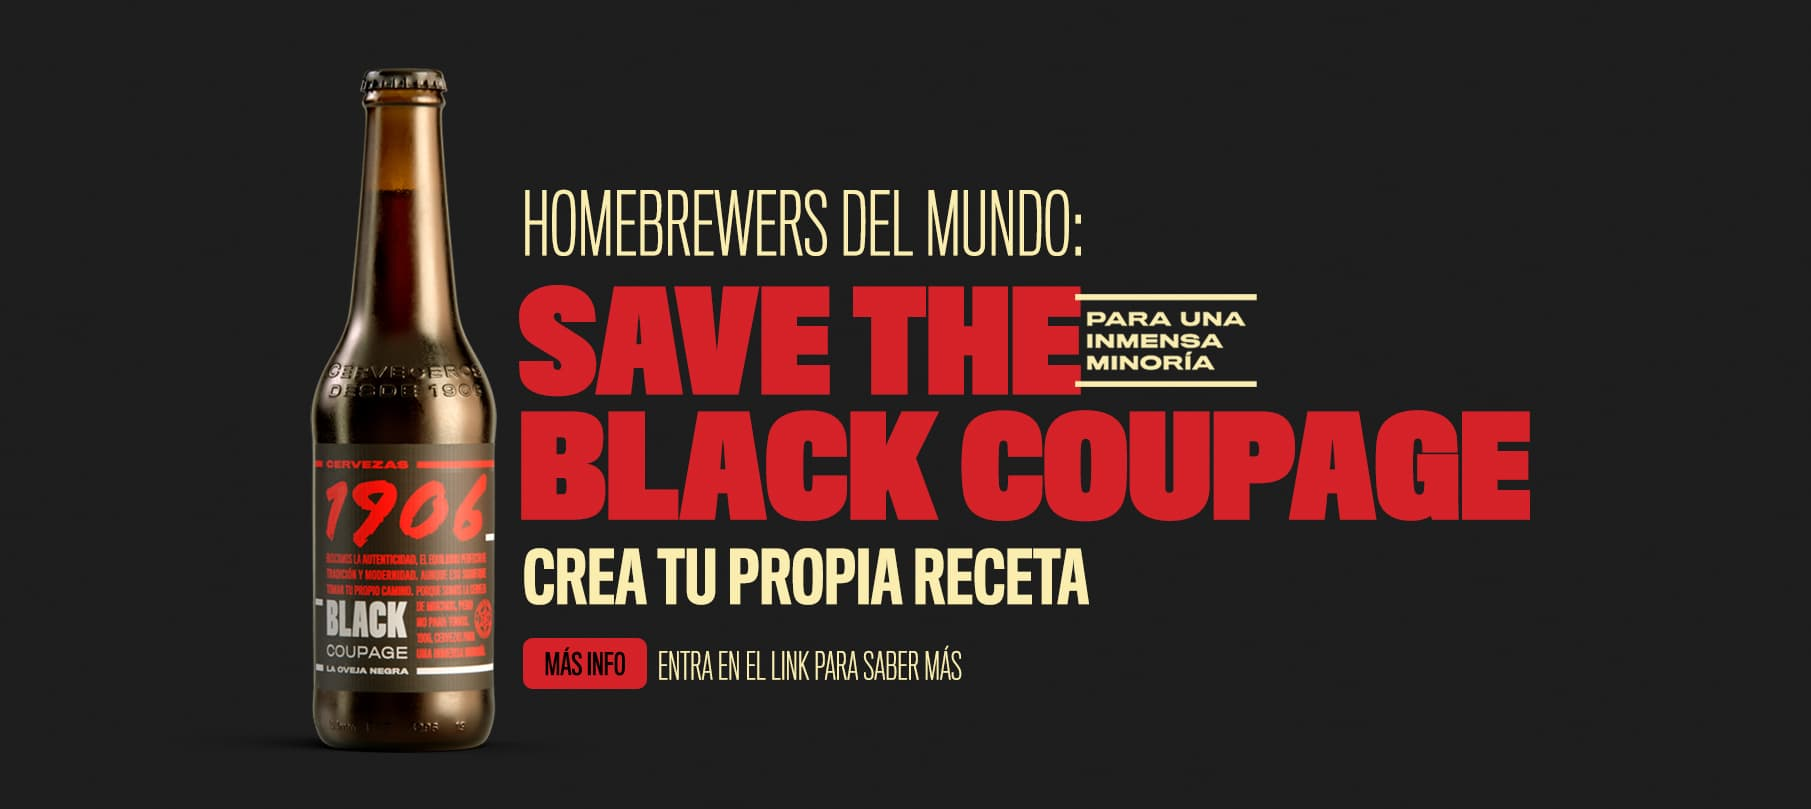 SAve the black coupage